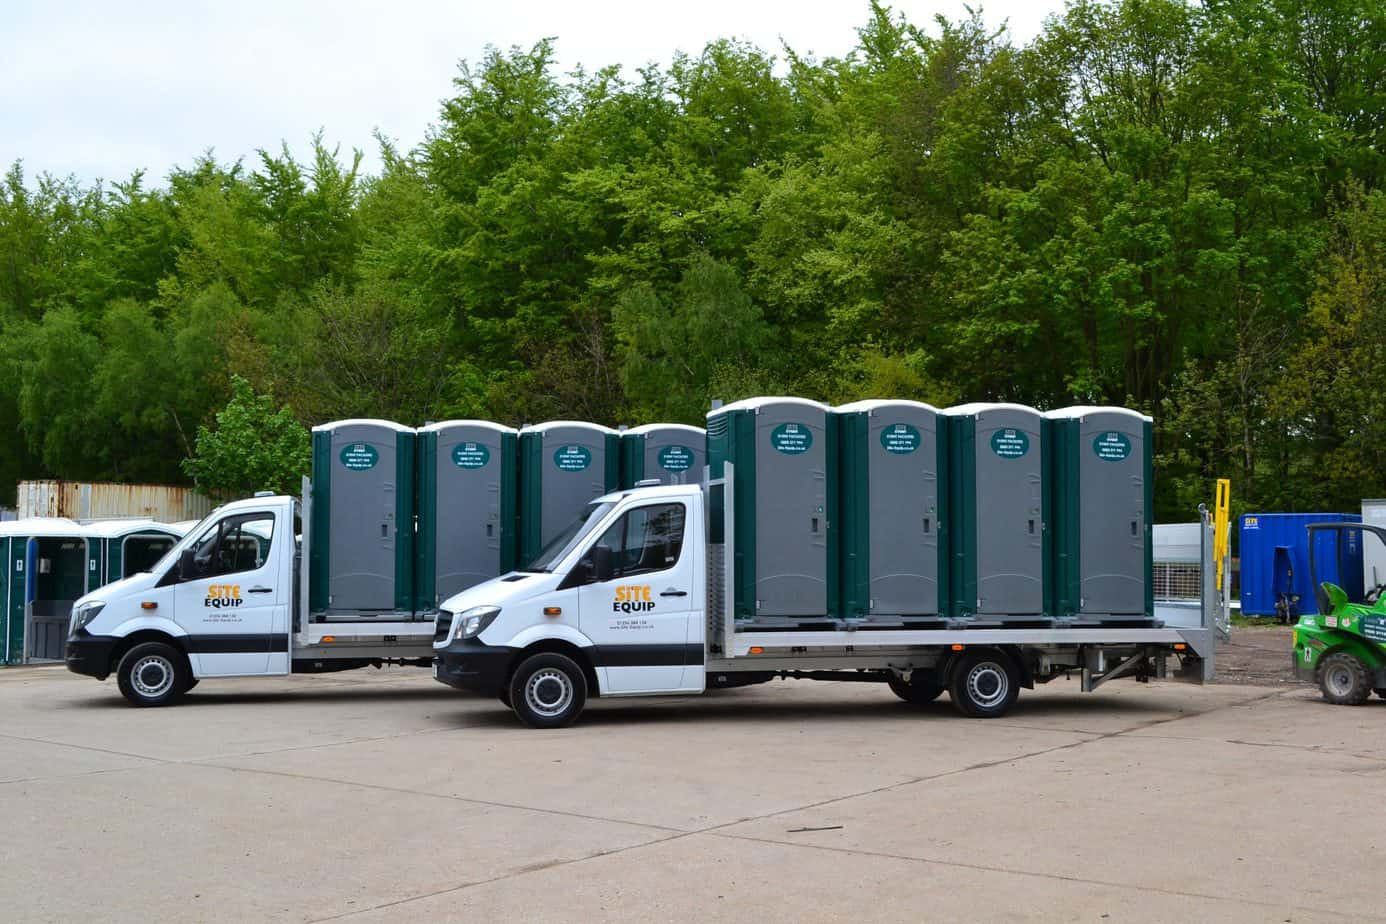 Delivery of toilets